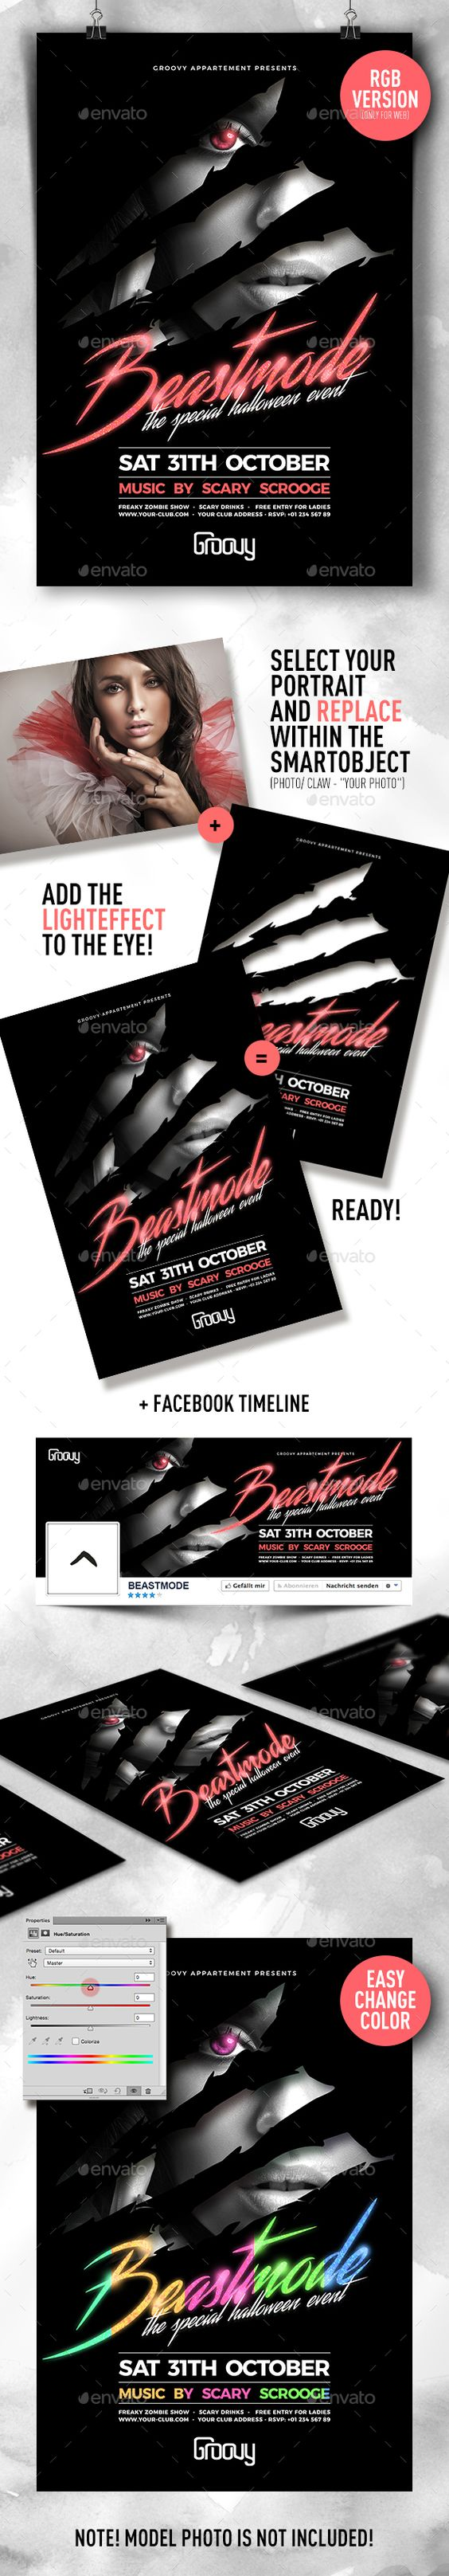 Beastmode Halloween Party Flyer | Flyers, Templates and Parties